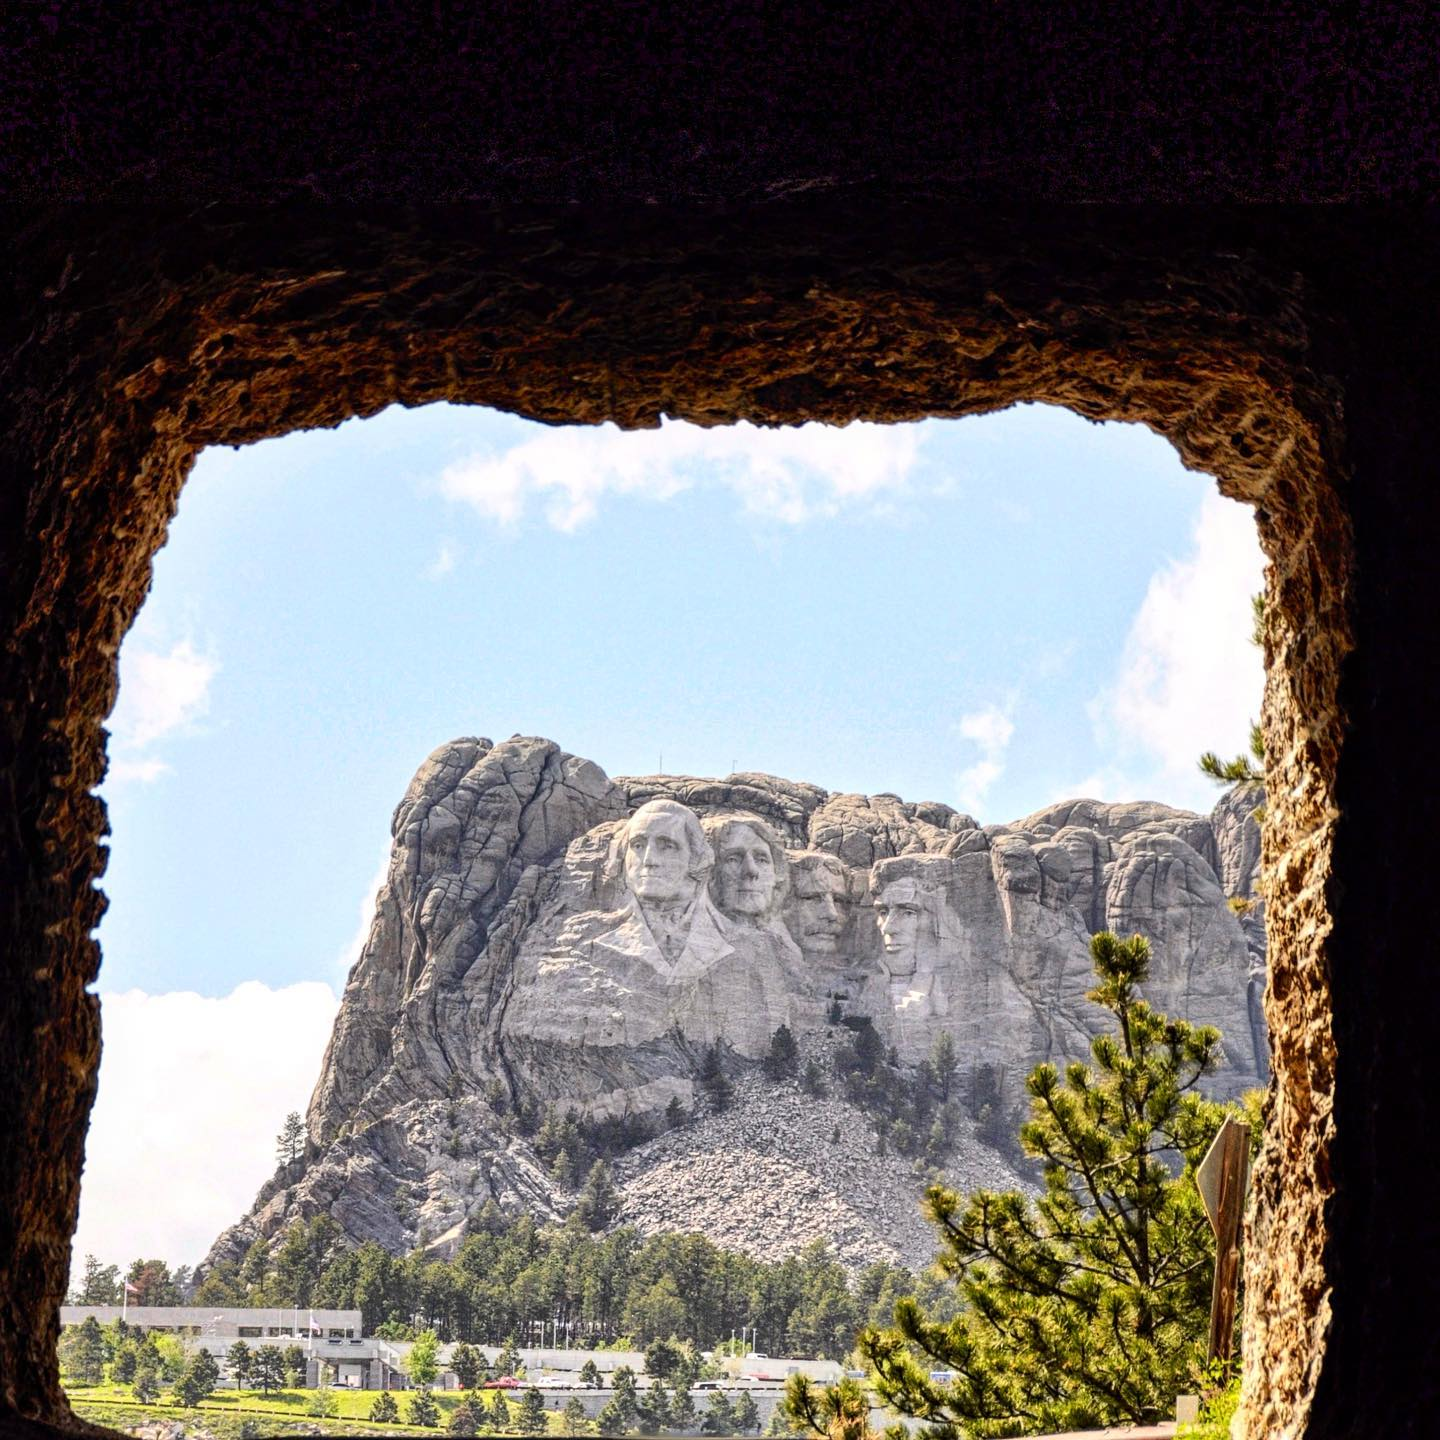 Custer State Park, South Dakota And here comes one of these magnificent views from Custer State Park. View from Iron Mountain Road Tunnel. #usa #us #usatravel #usatravels #usatrip #roadtripusa #roadtripamerica #custerstatepark #stateparks #mountrushmore #view #viewoftheday #amazingview #tunnelview #nationalmonuments #travelphotography #travelpics #travelphoto #reisefotografie #reisefoto #usaphotography #usaphotographer #travelblog #travelblogger #reiseblog #reiseblogger #instatravel #instagood #instatraveling #instapic